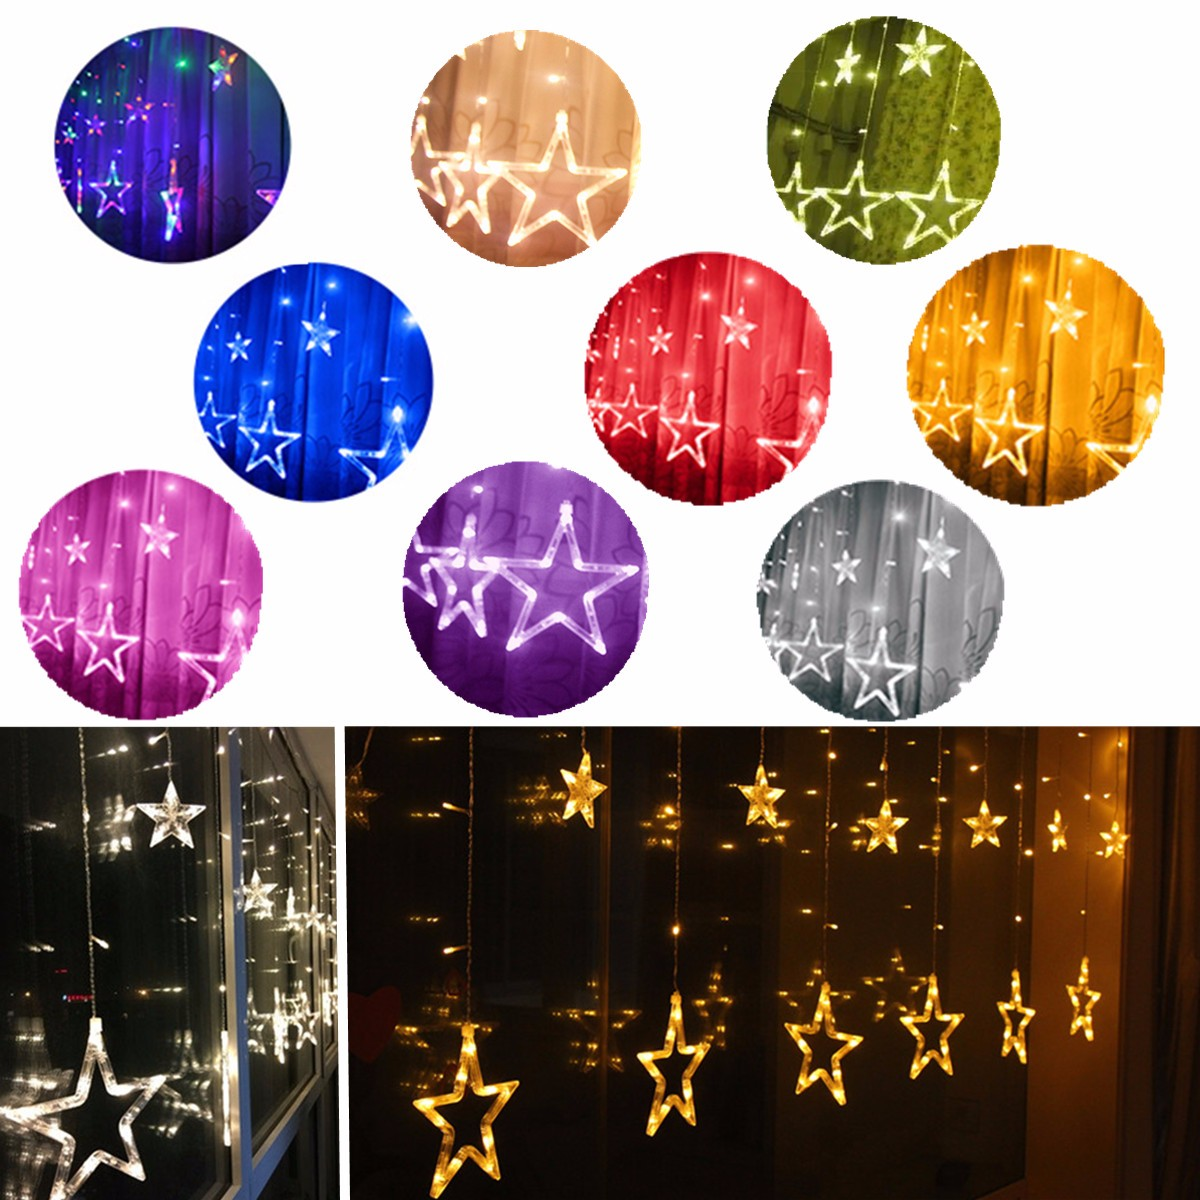 2.5m Battery Powered Star Fairy Led String Curtain Waterfall Light Lamp Christmas Wedding Party Home Decor Lighting Lights